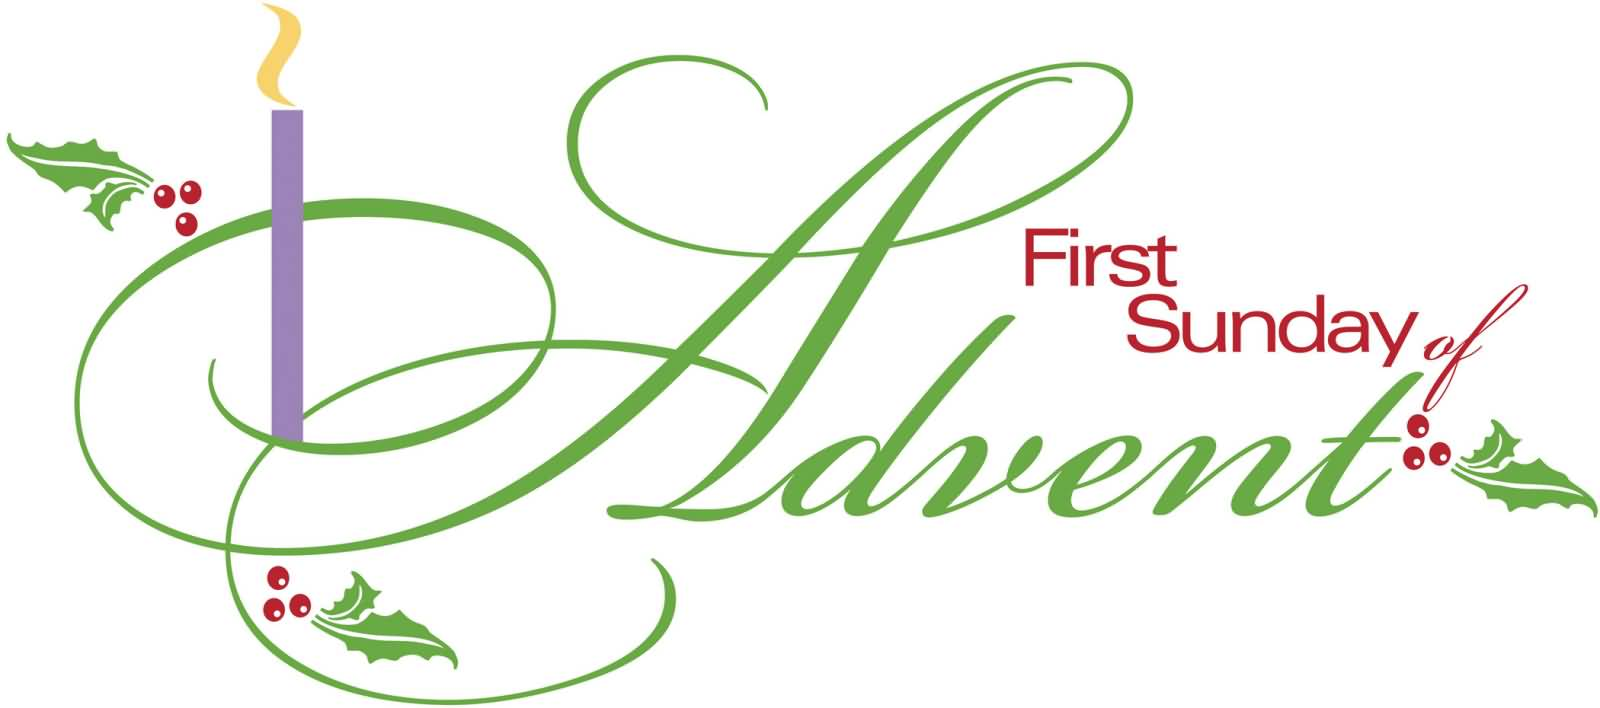 Advent clipart 2nd. Free light cliparts download